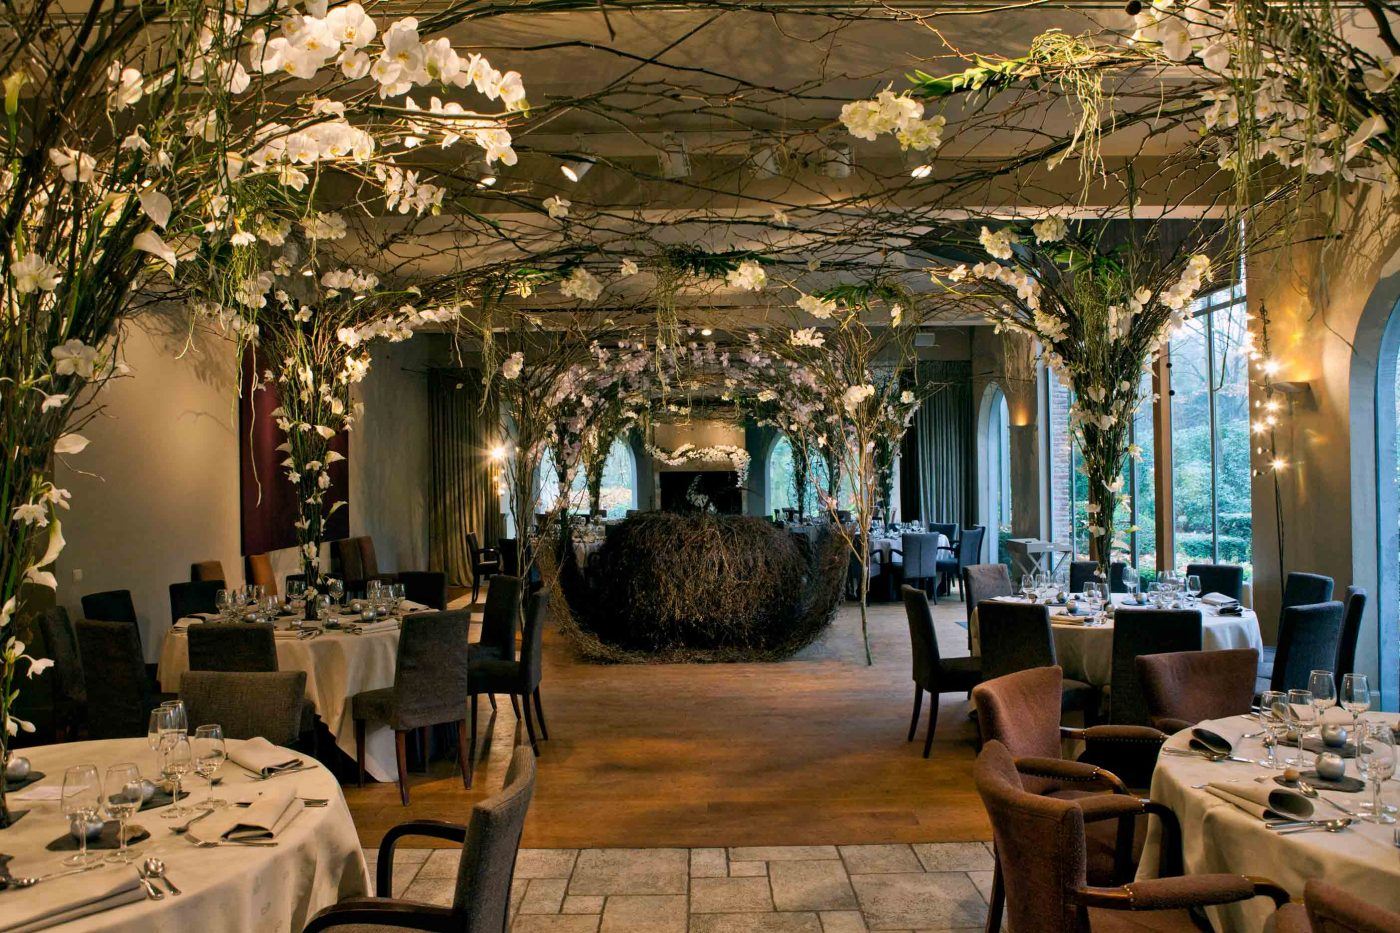 Restaurant decoration with white flowers composed on the tables in a conical branch structure. At the ceiling they allcome together and decorate the whole room this way.